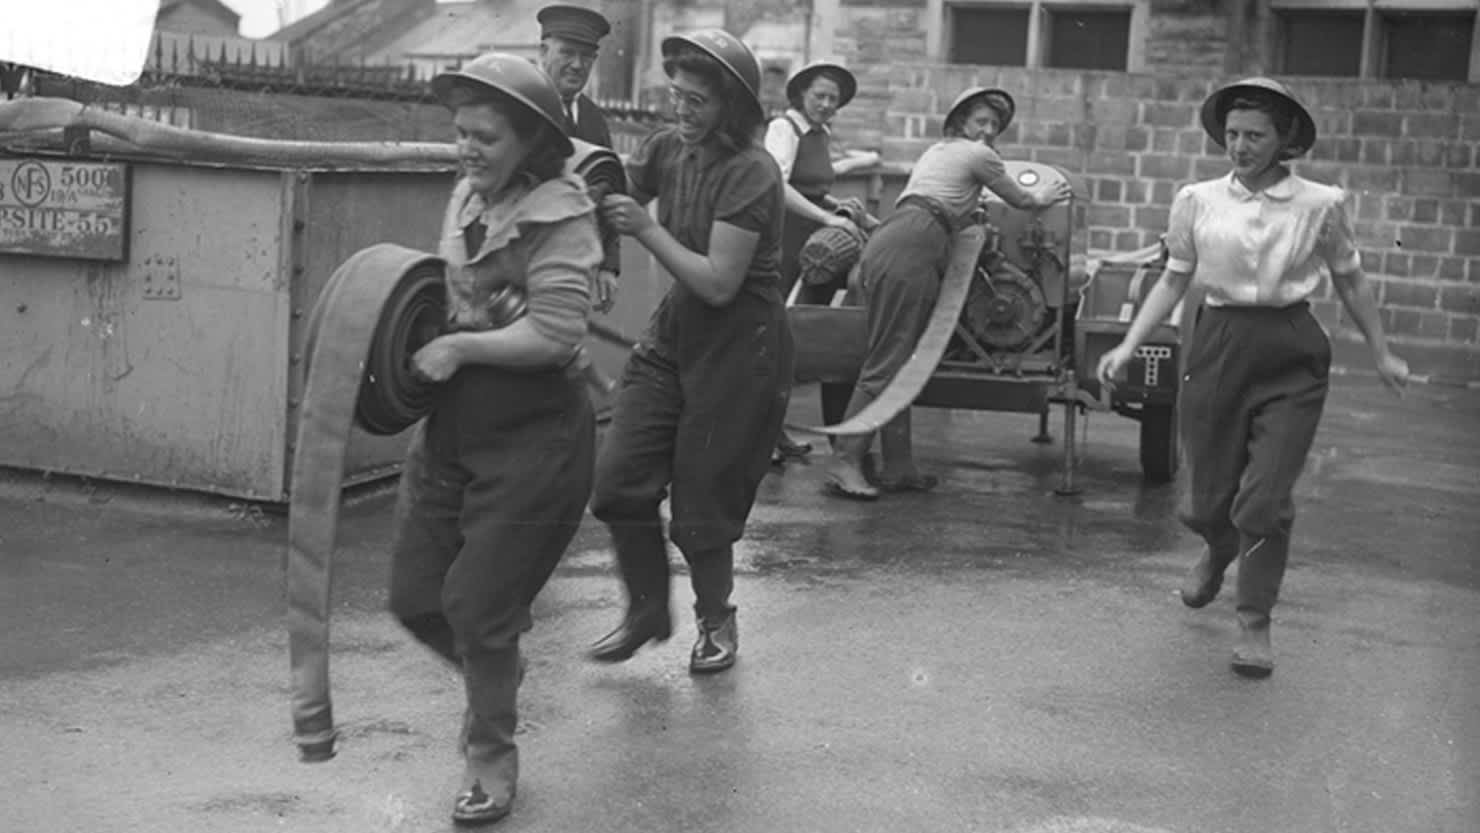 Members of the Women's Auxiliary Fire Service in action during WWII. Courtesy of The Box, Plymouth